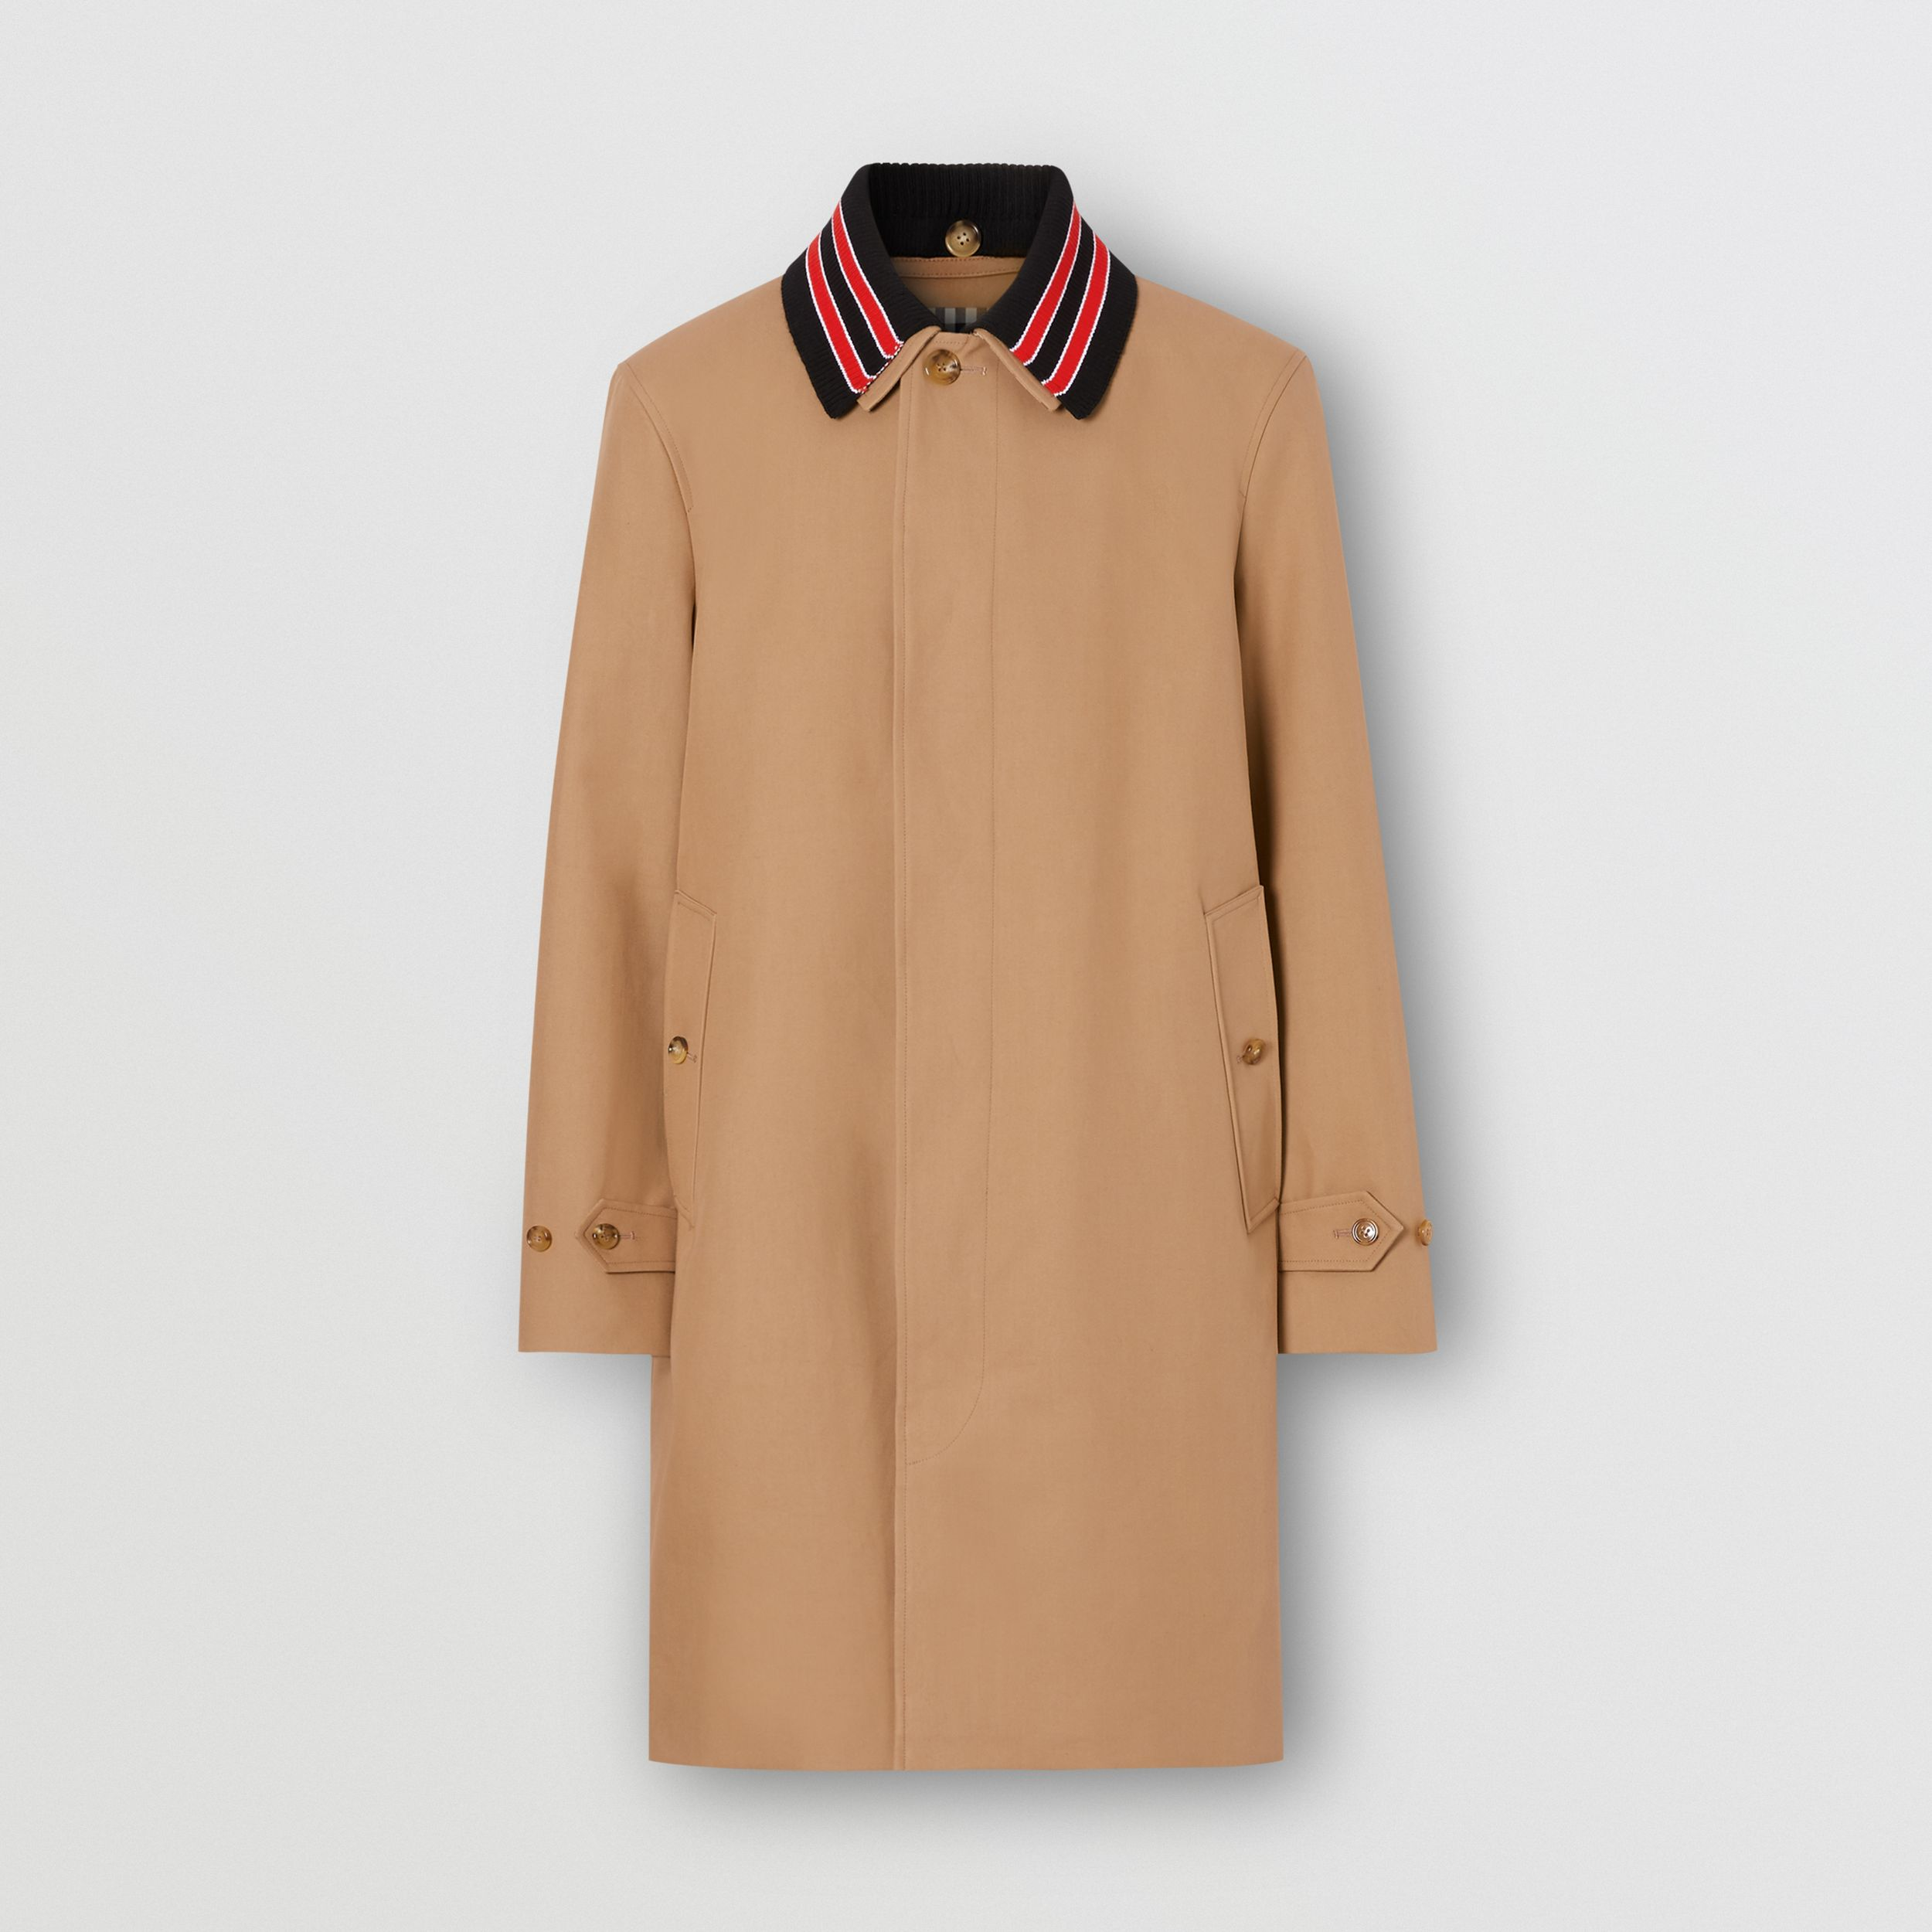 Detachable Striped Collar Cotton Car Coat in Warm Walnut - Men | Burberry - 4